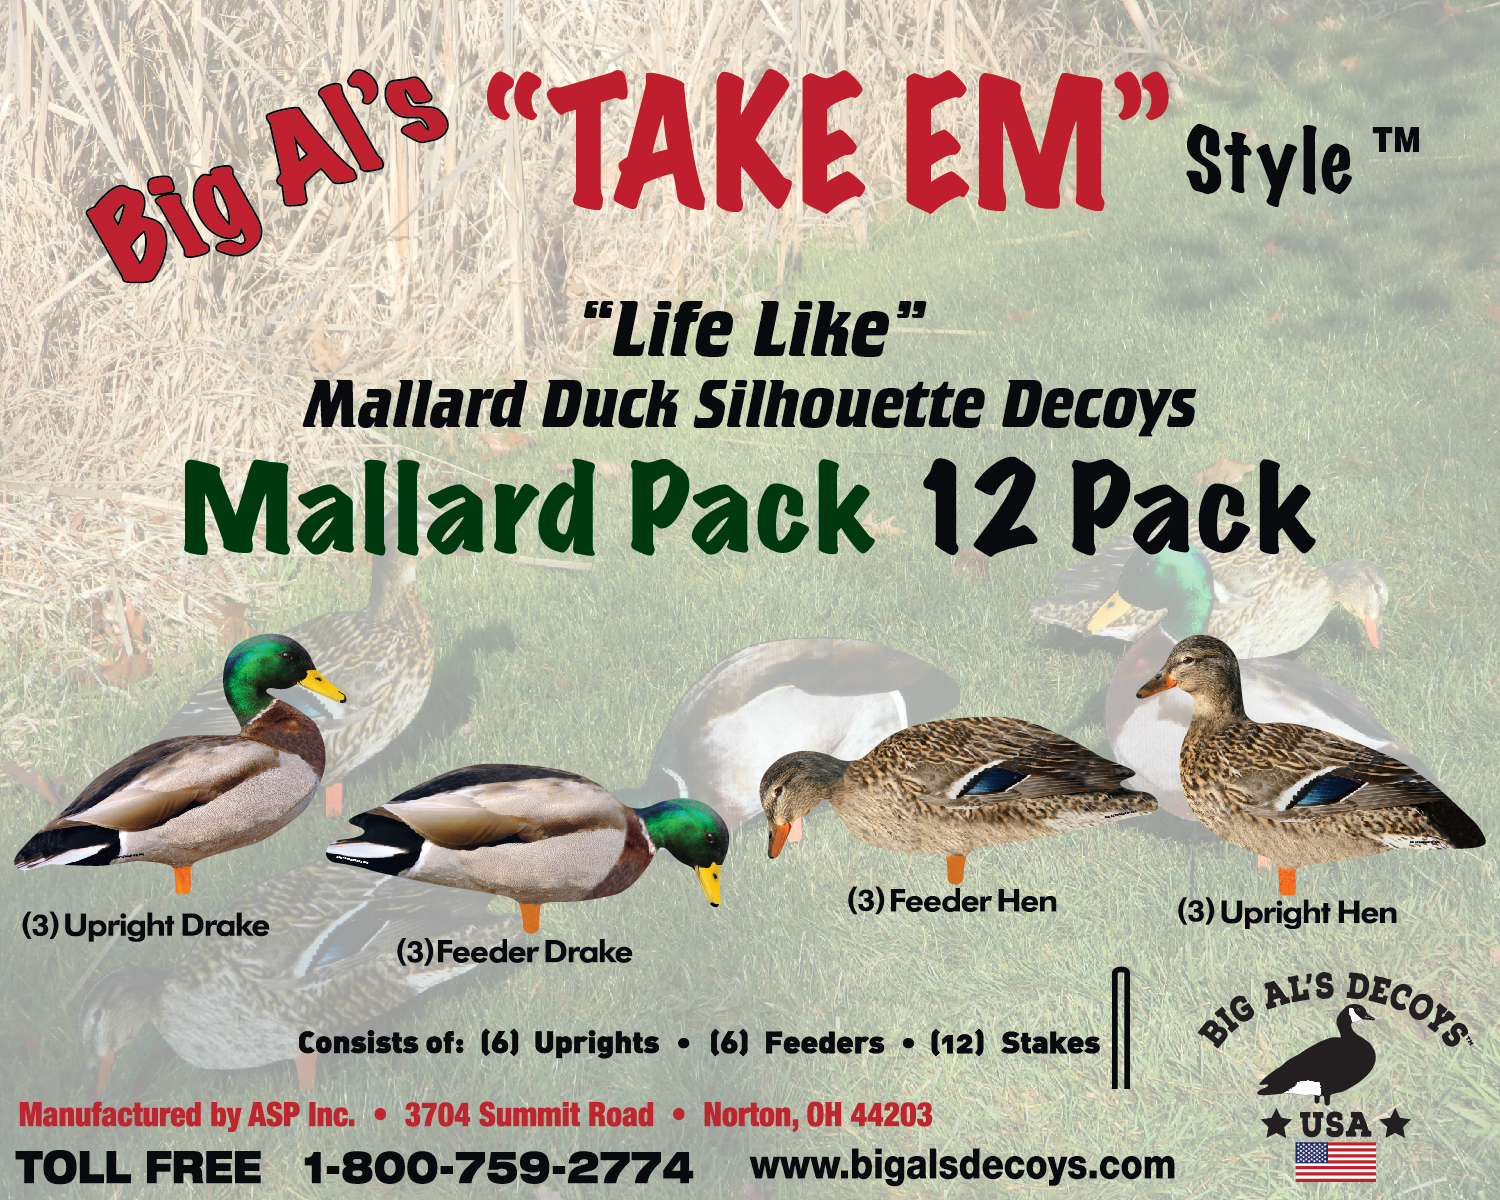 mallard-pack-8x10-label-2019-web.jpg